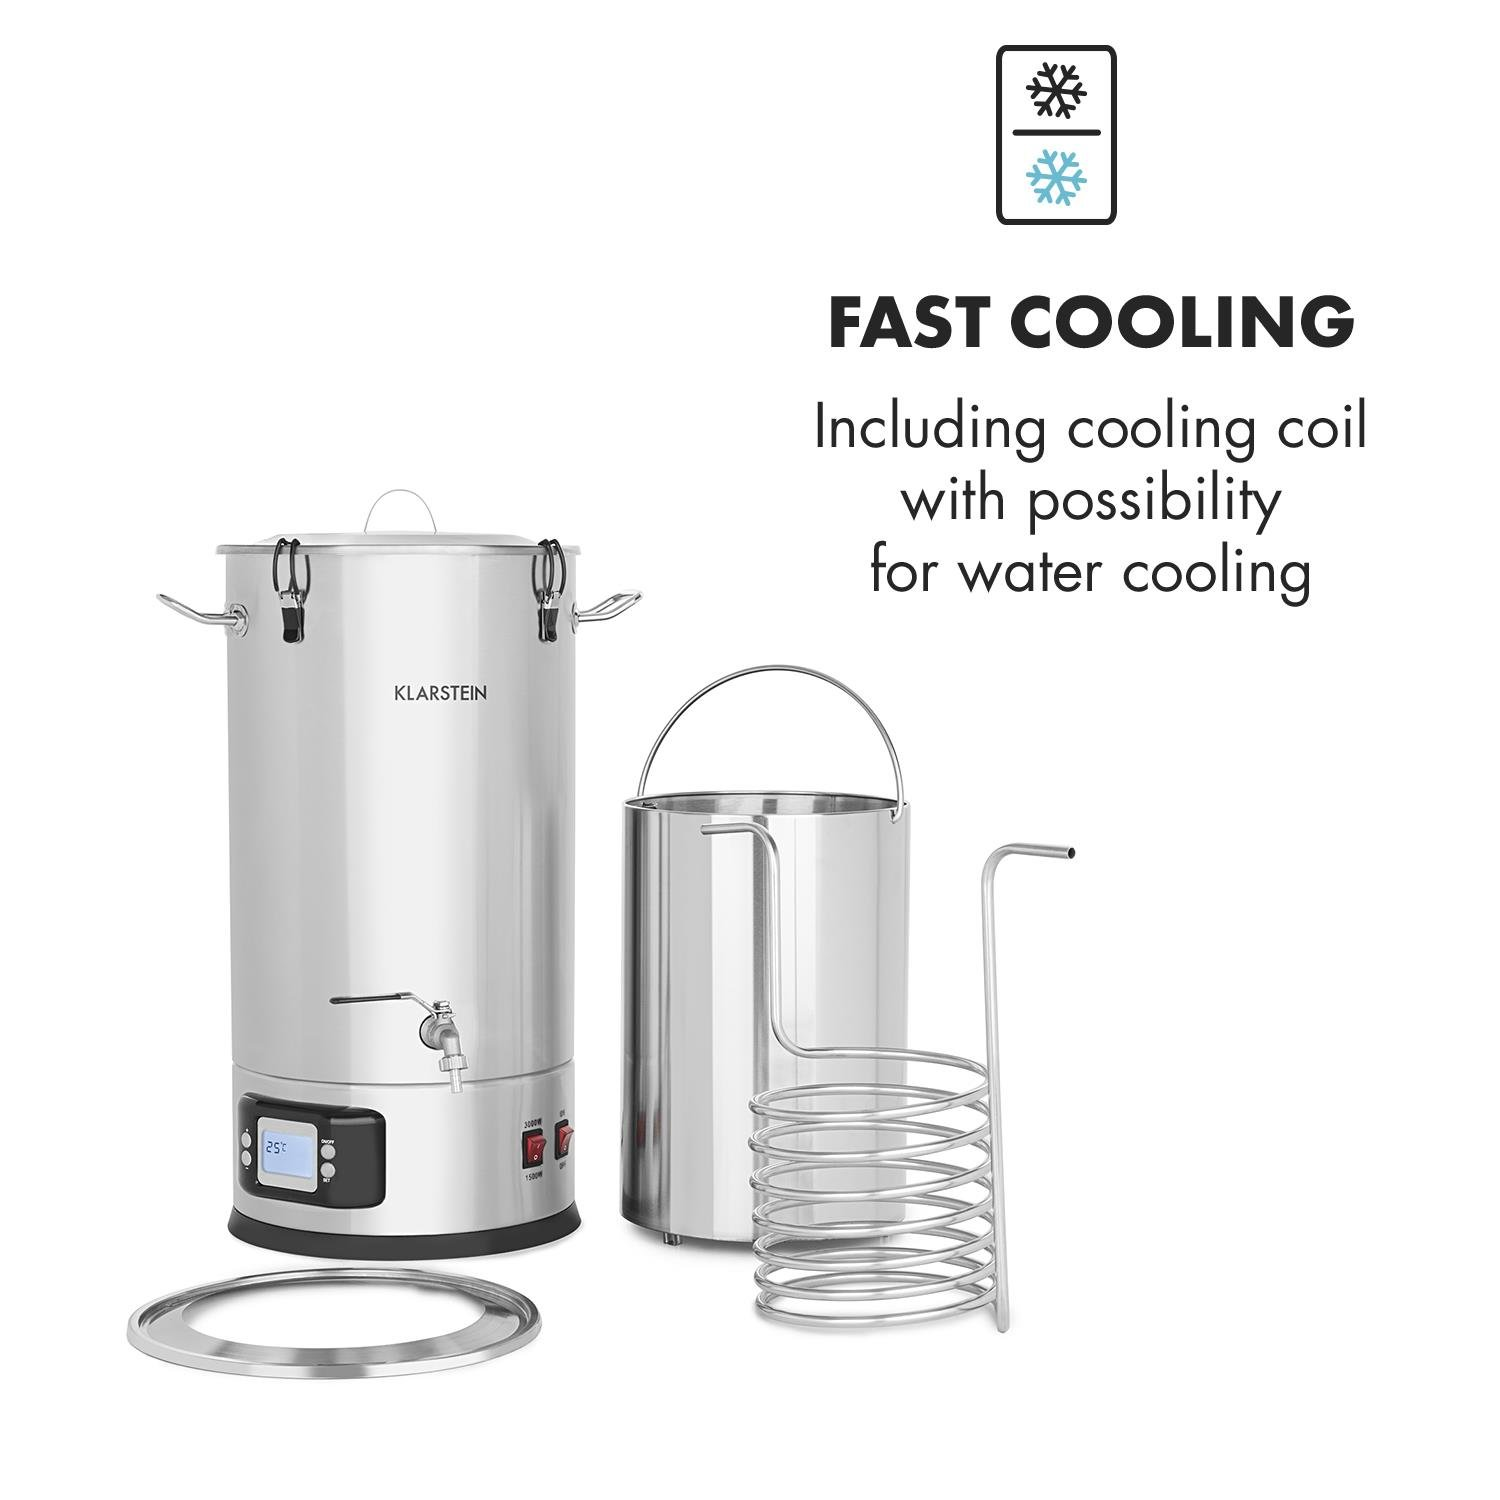 Klarstein Maischfest • Beer Brewing Device • Mash Tun • 5-Piece Set • 1500 and 3000 Watts Power • 25-litre Capacity • LCD Display and Touch Control Panel • Temperature • Stainless Steel by KLARSTEIN (Image #6)